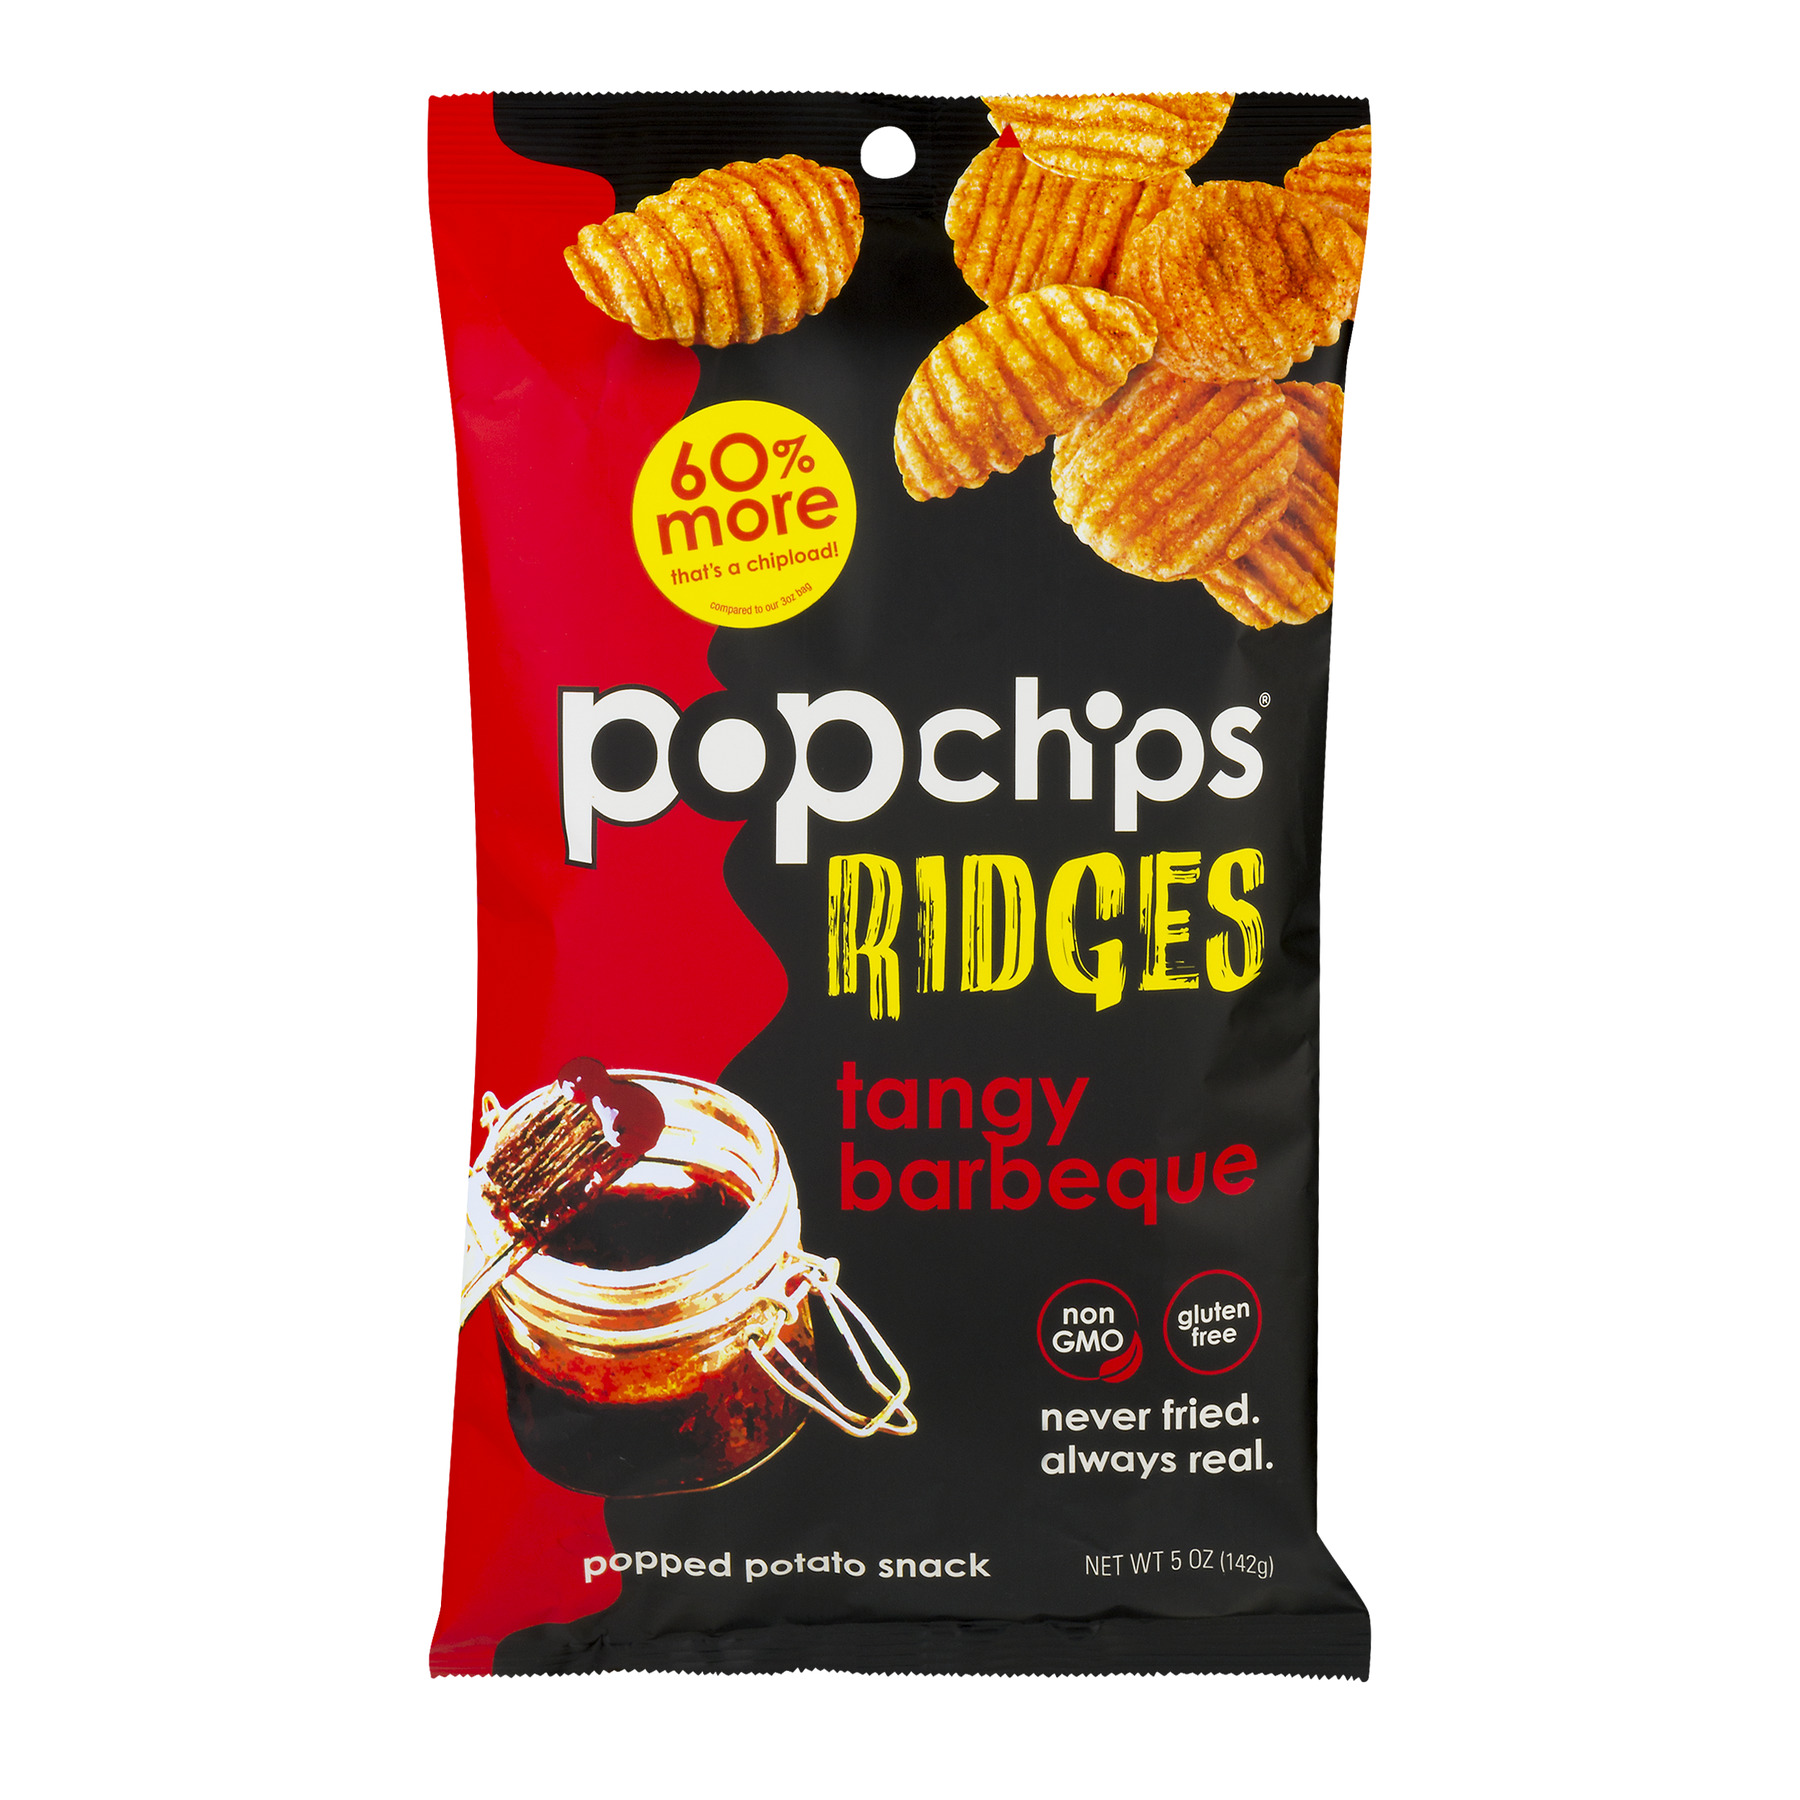 Popchips Ridges Popped Potato Snack Tangy Barbeque, 5.0 OZ